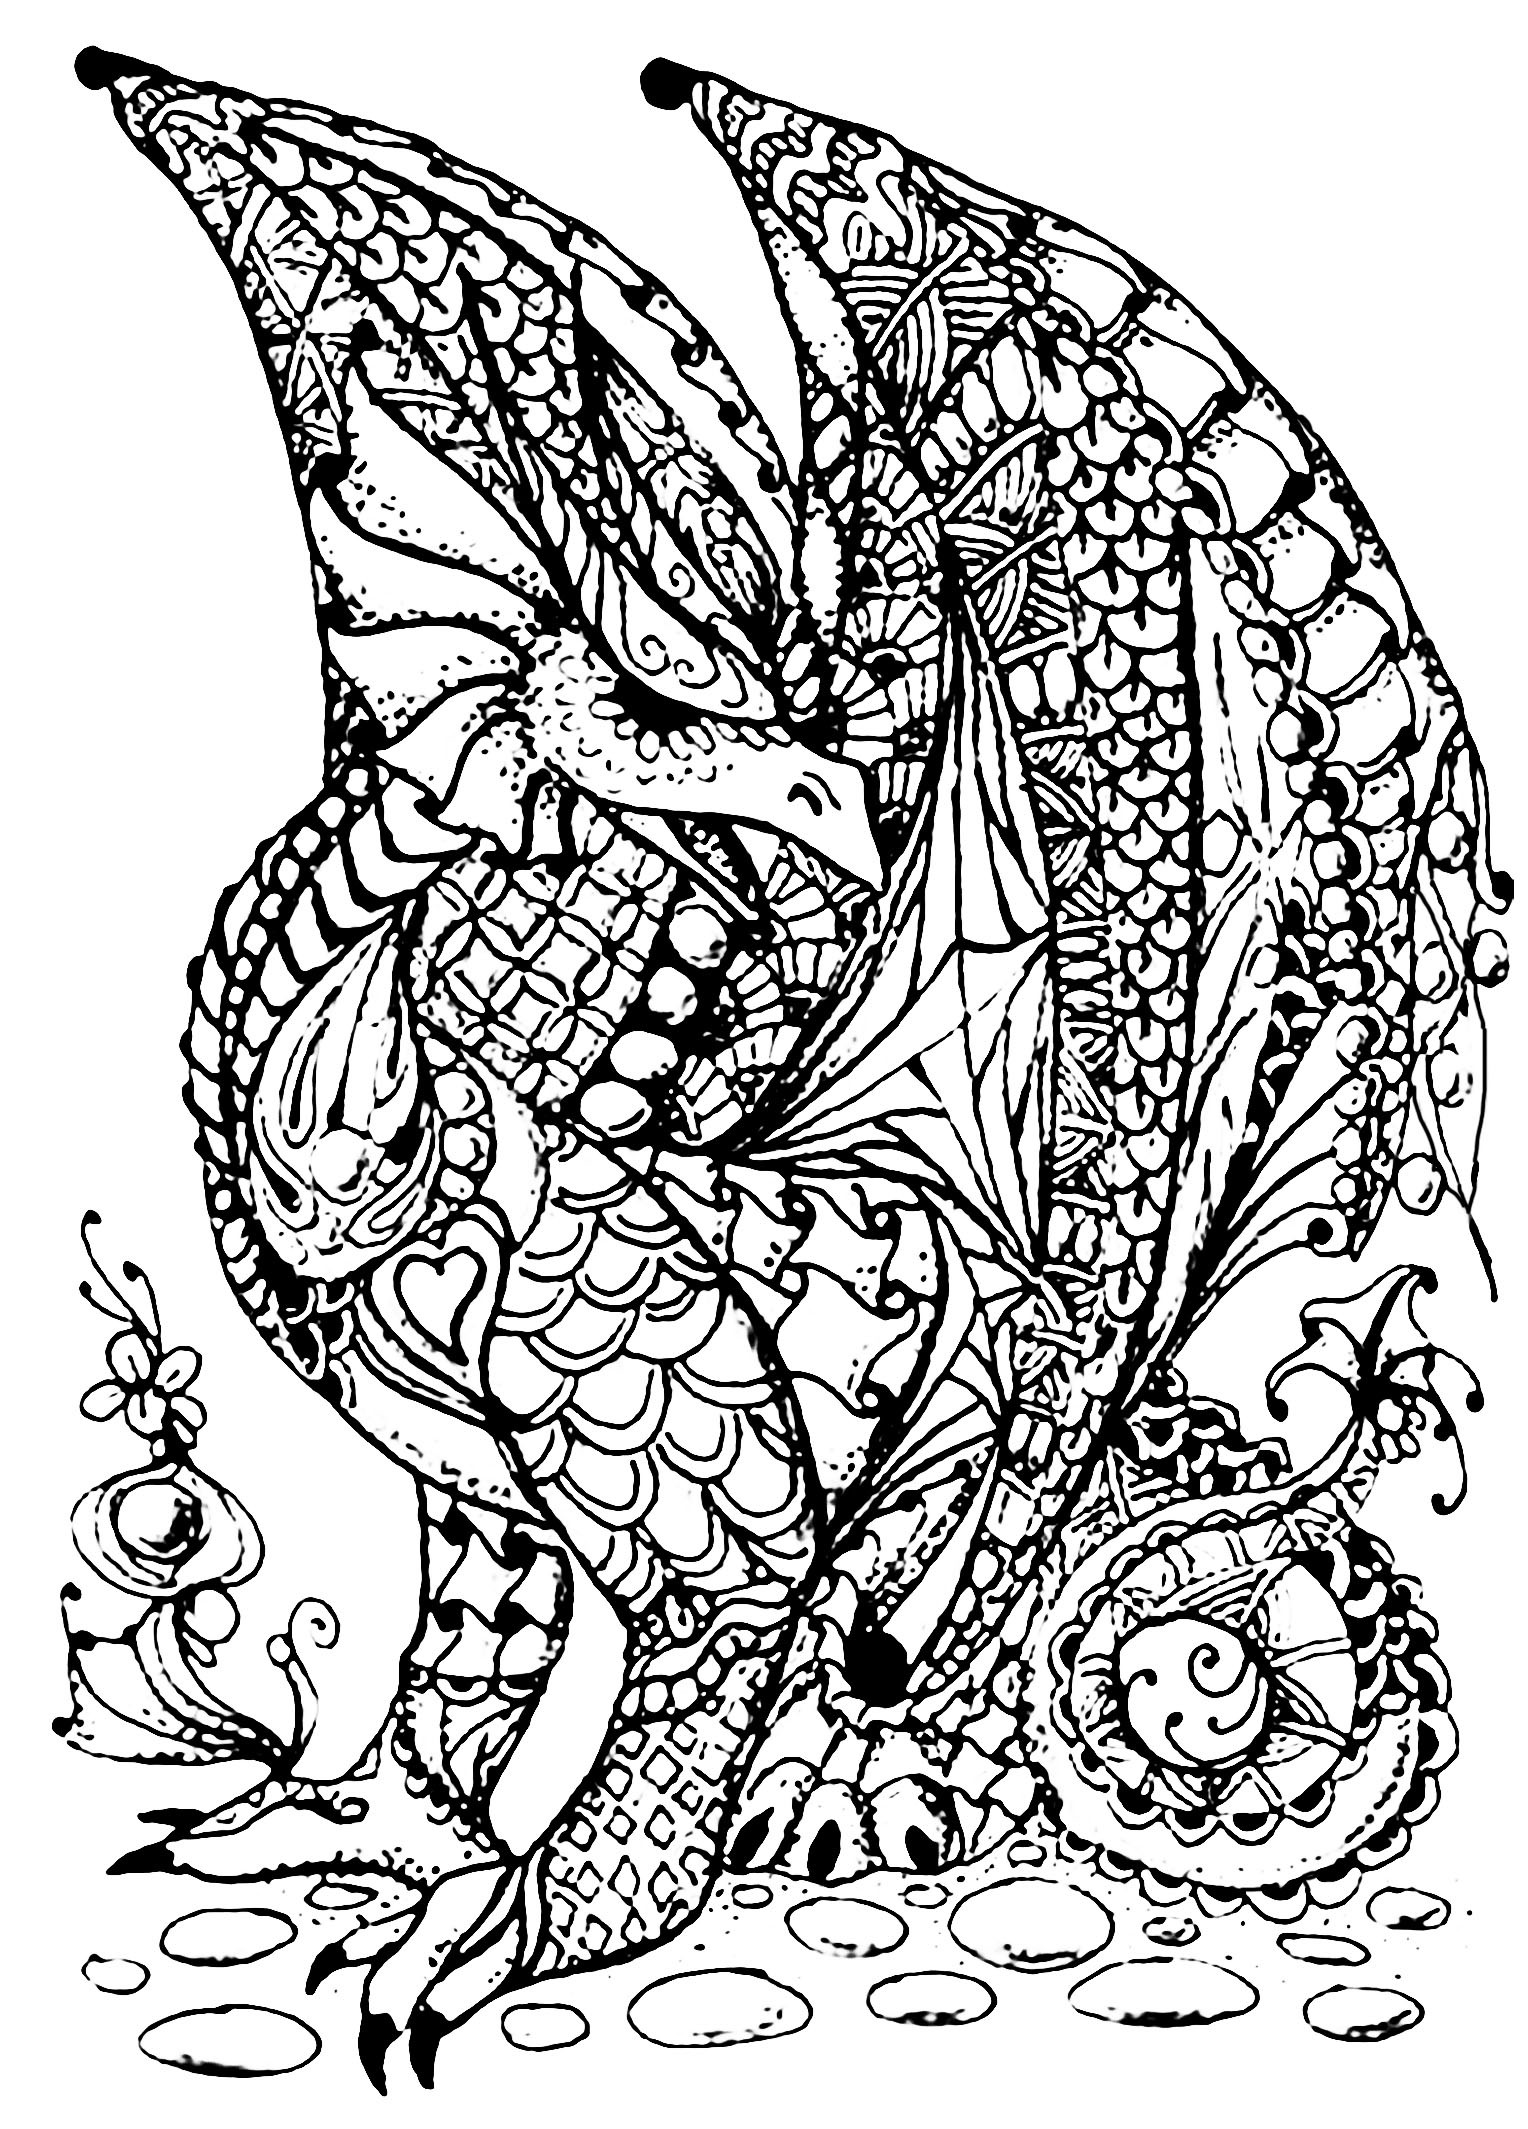 Best ideas about Dragon Adult Coloring Books . Save or Pin Dragon full of scales Dragons Adult Coloring Pages Now.